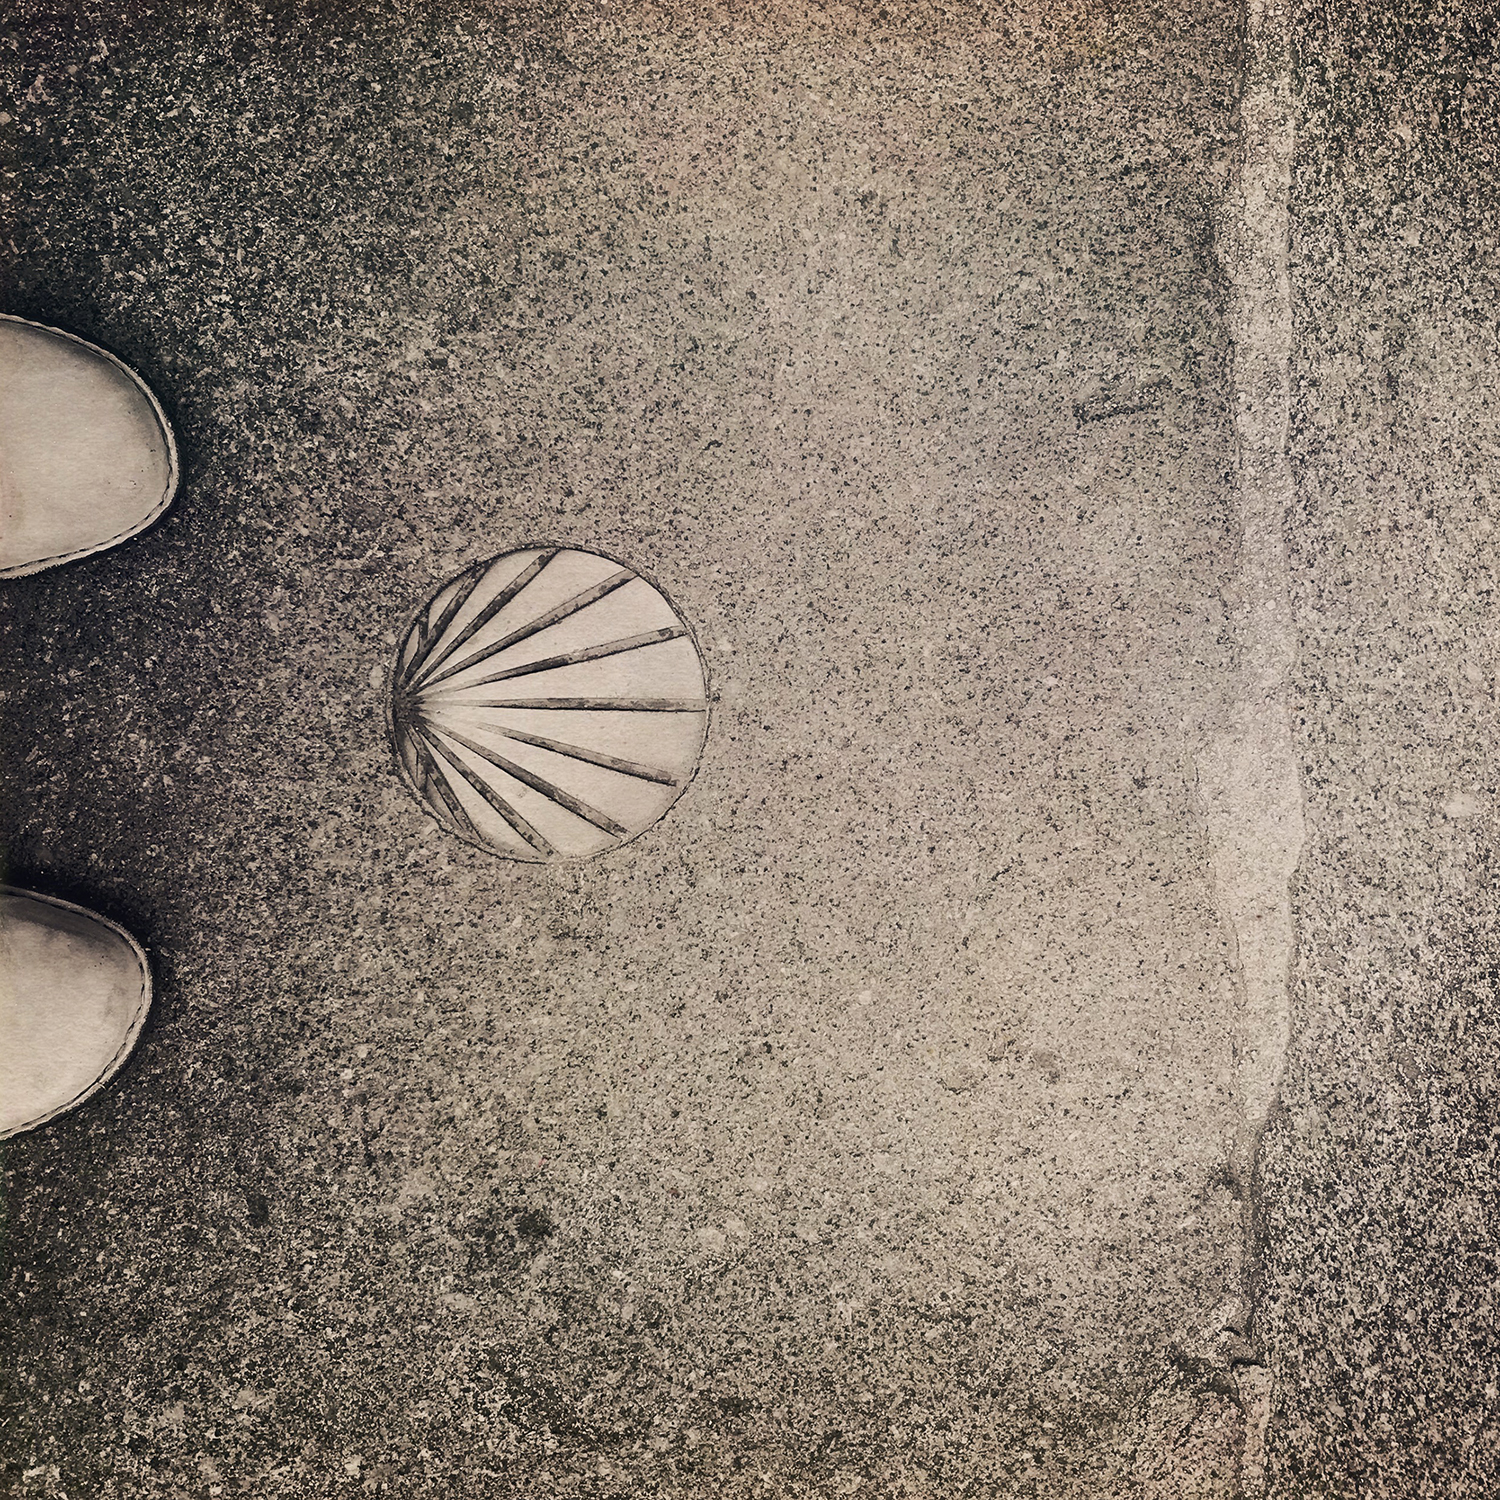 camino-shell-my-feet.jpg